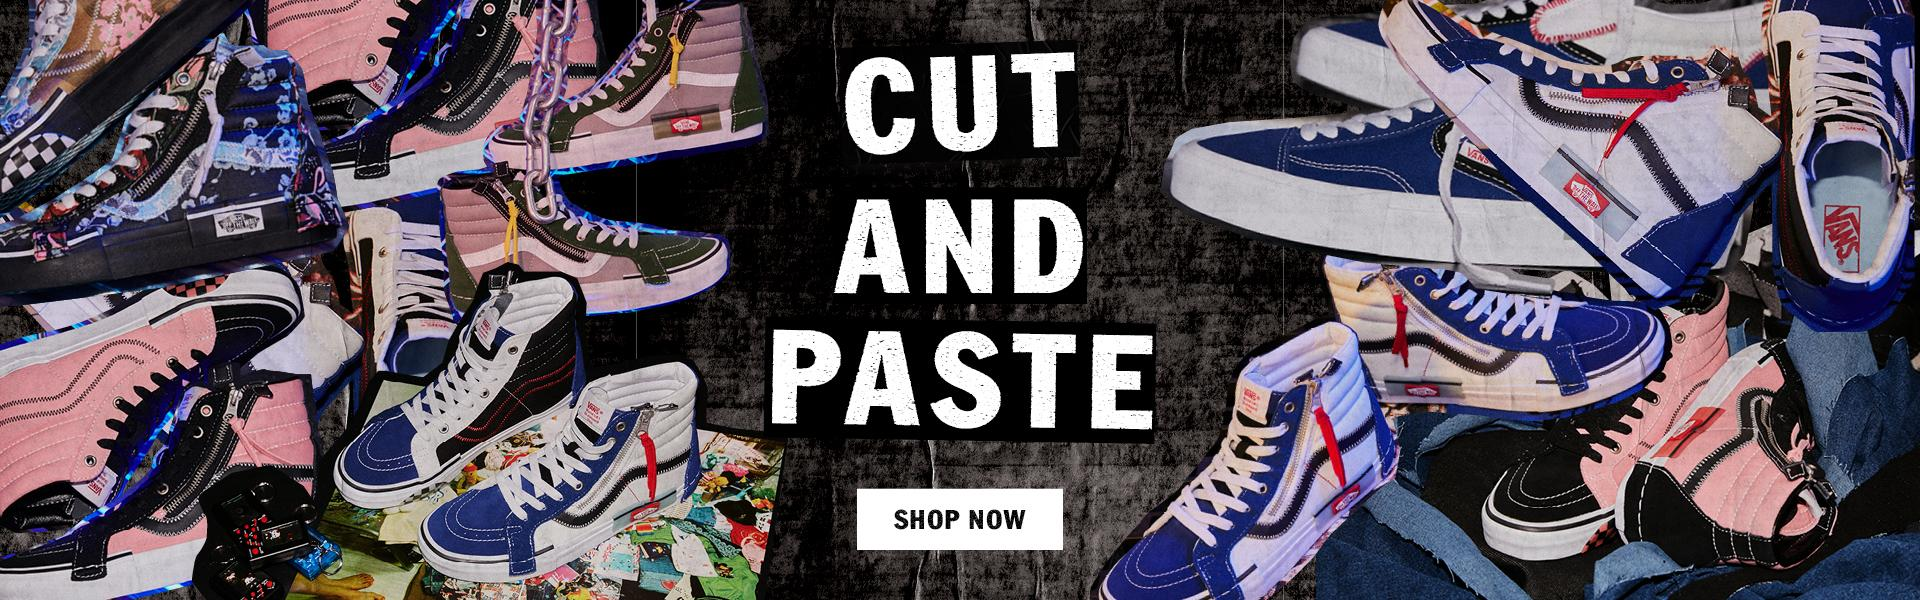 SHOP VANS CUT AND PASTE